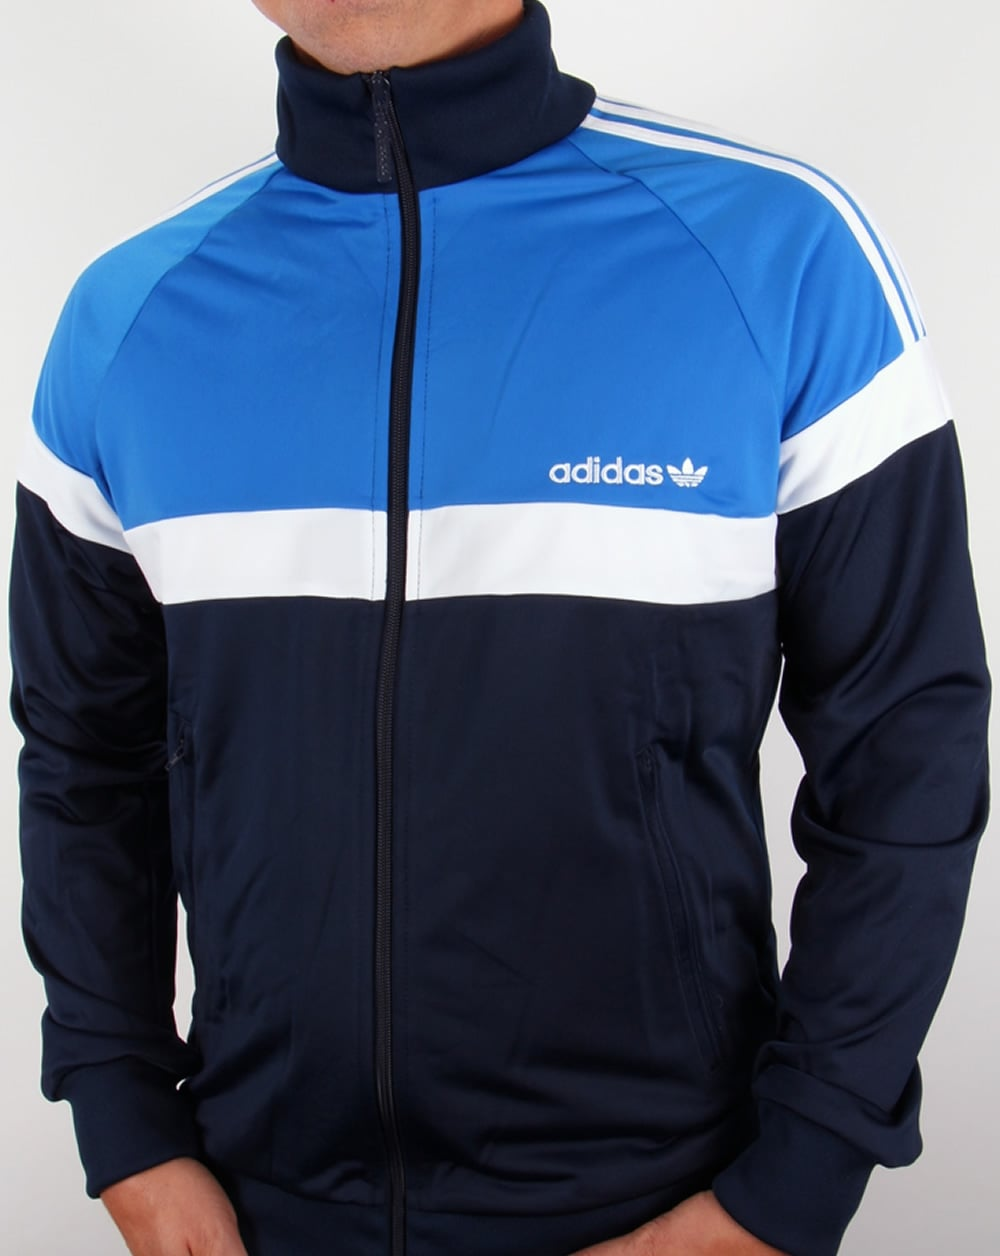 7be825814193 adidas Originals Adidas Originals Itasca Track Top Navy Royal Blue